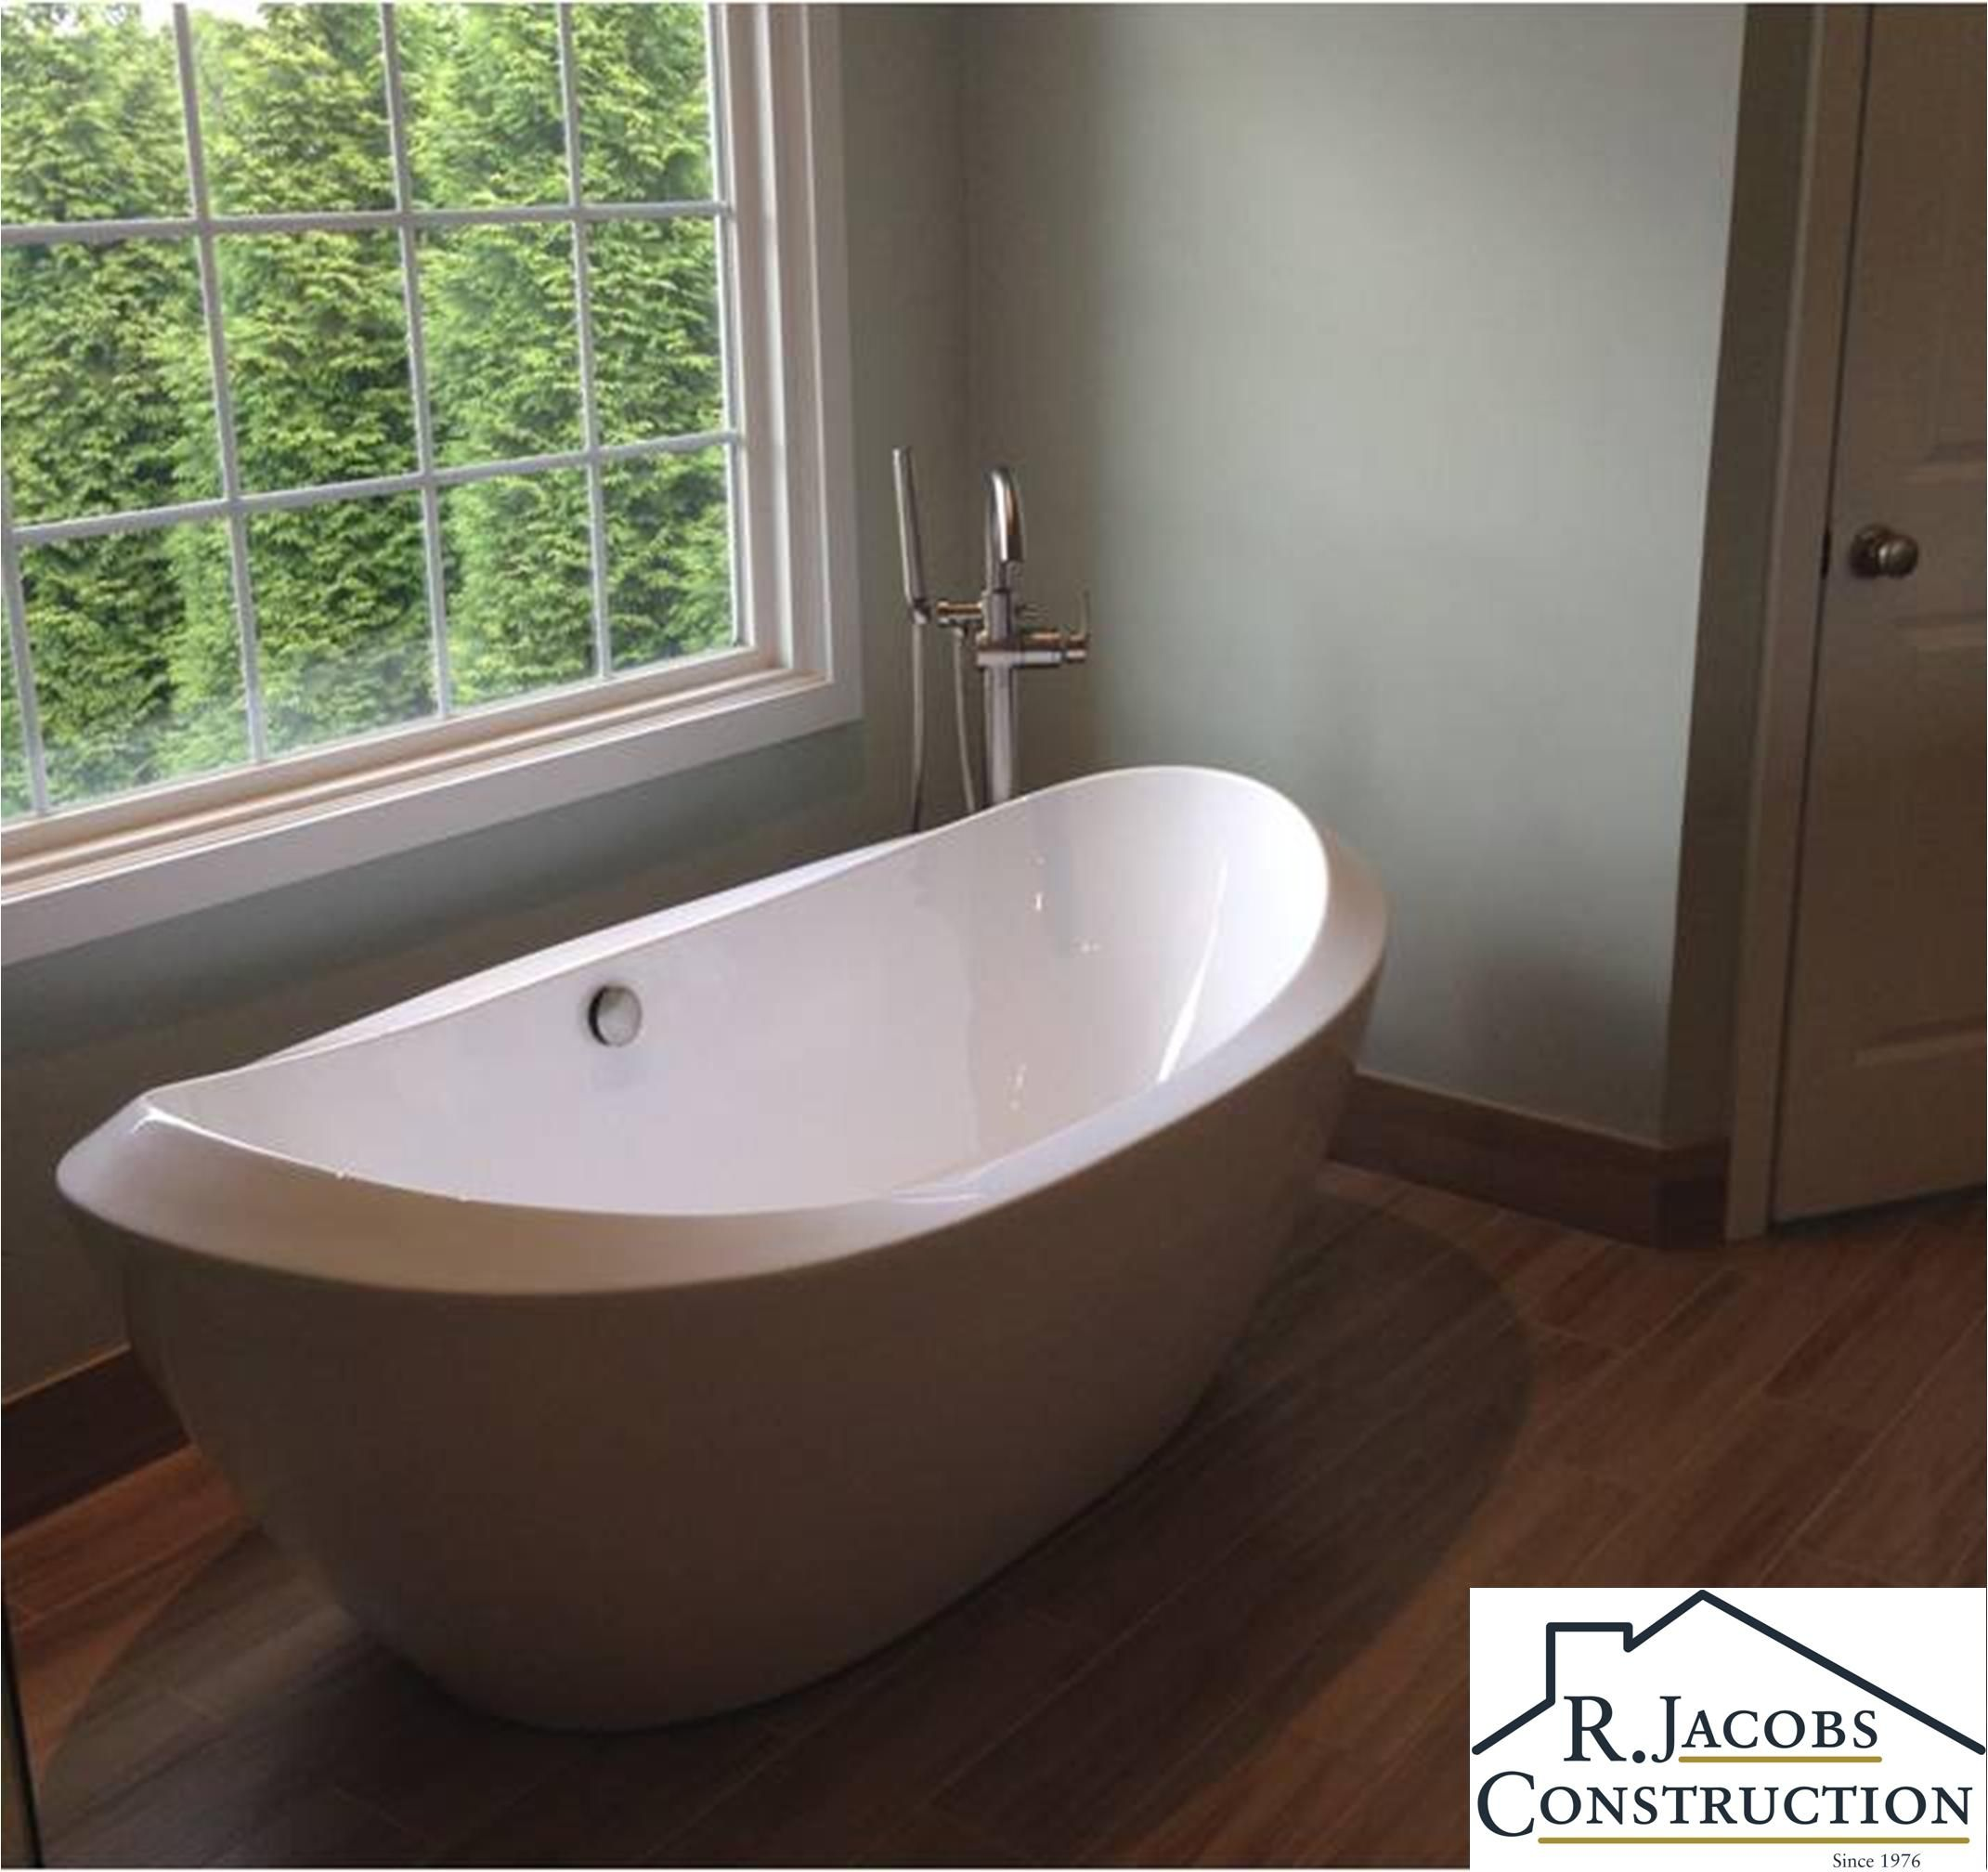 redoing bathroom%0A As a home renovation company and home builder  R  Jacobs Construction is  known for superior customer service  quality craftsmanship and exceptional  designs